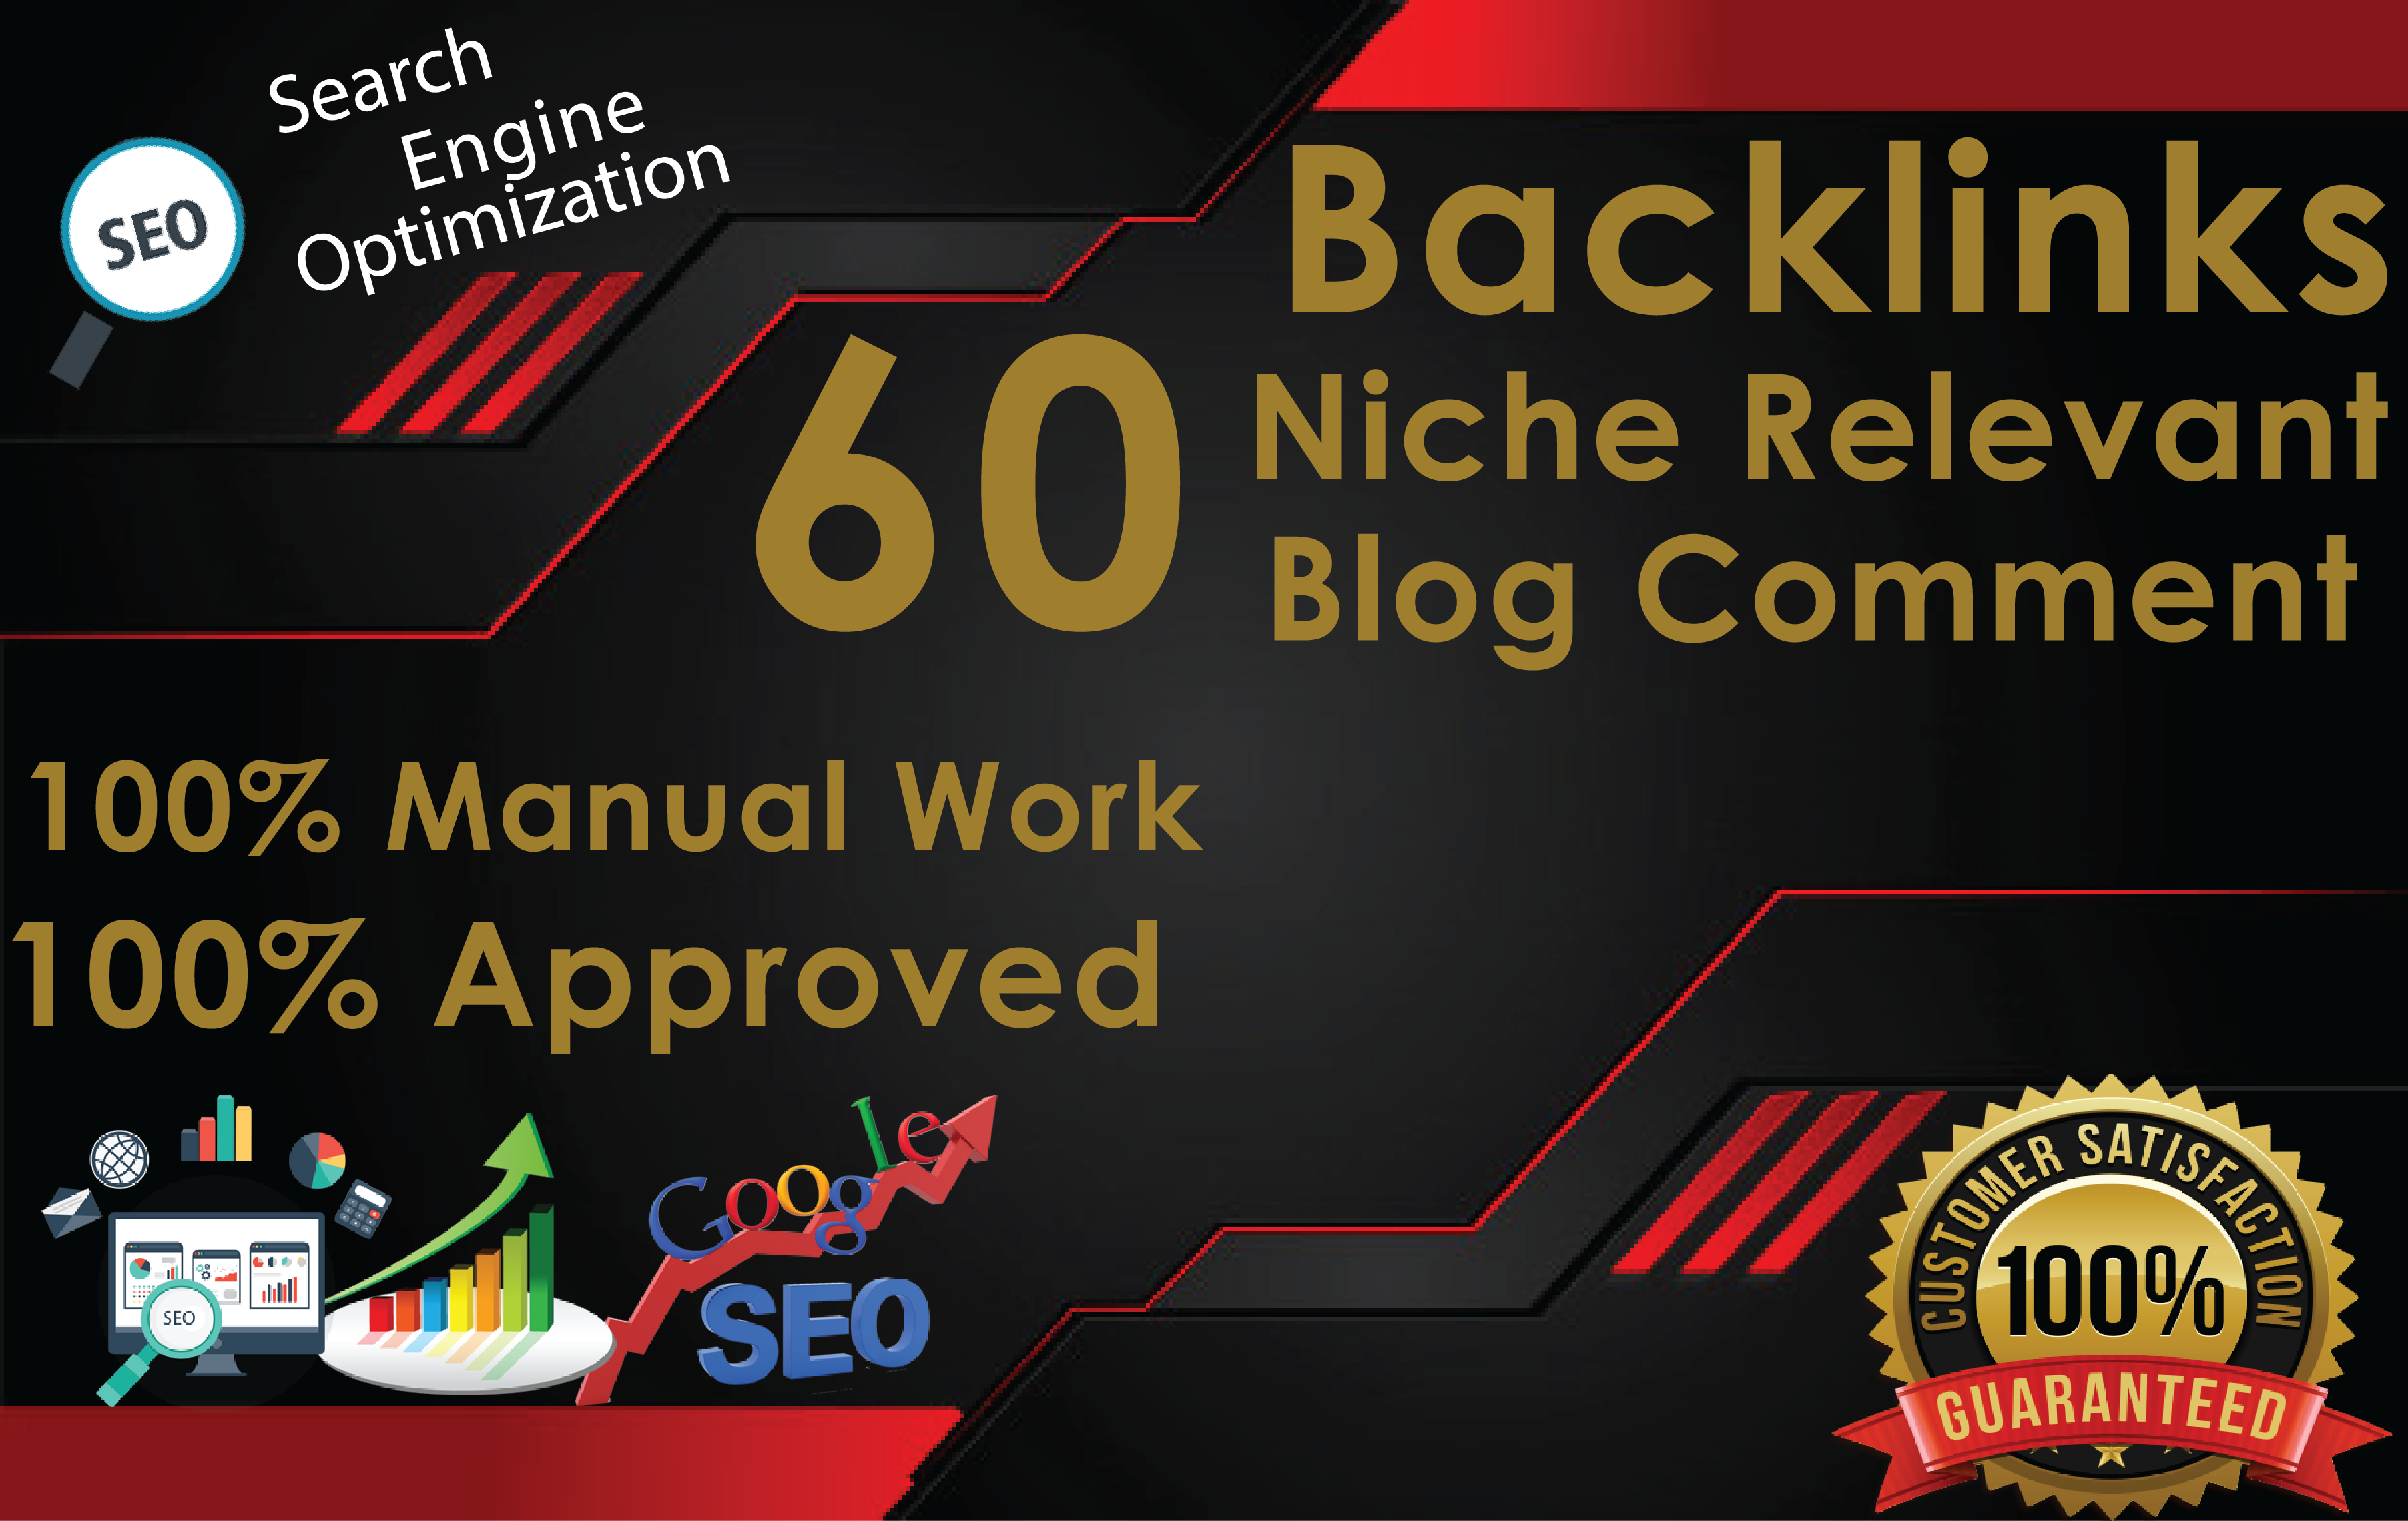 I Will Do 60 Niche Relevant Blog Comment Low Obl Quality Work